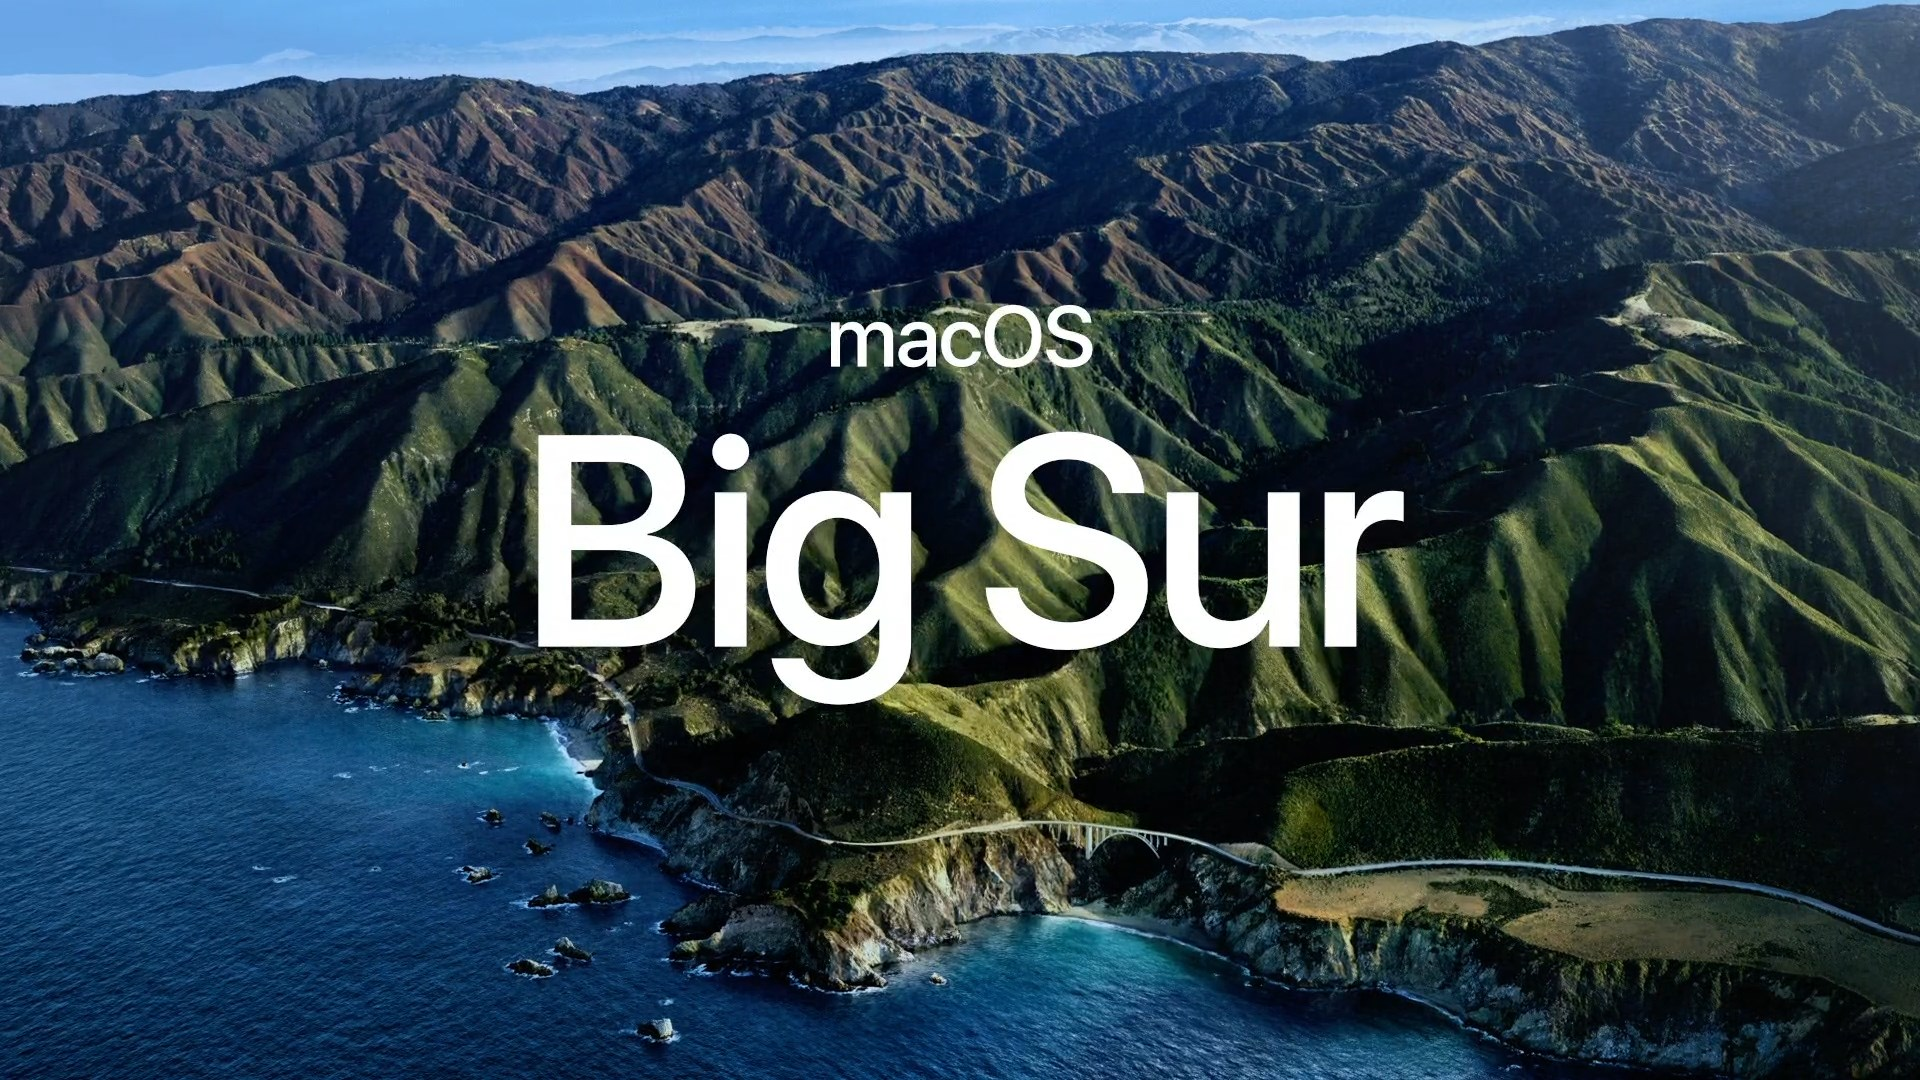 Apple Announces Macos 11 Big Sur With An Emphasis On Design Ars Technica